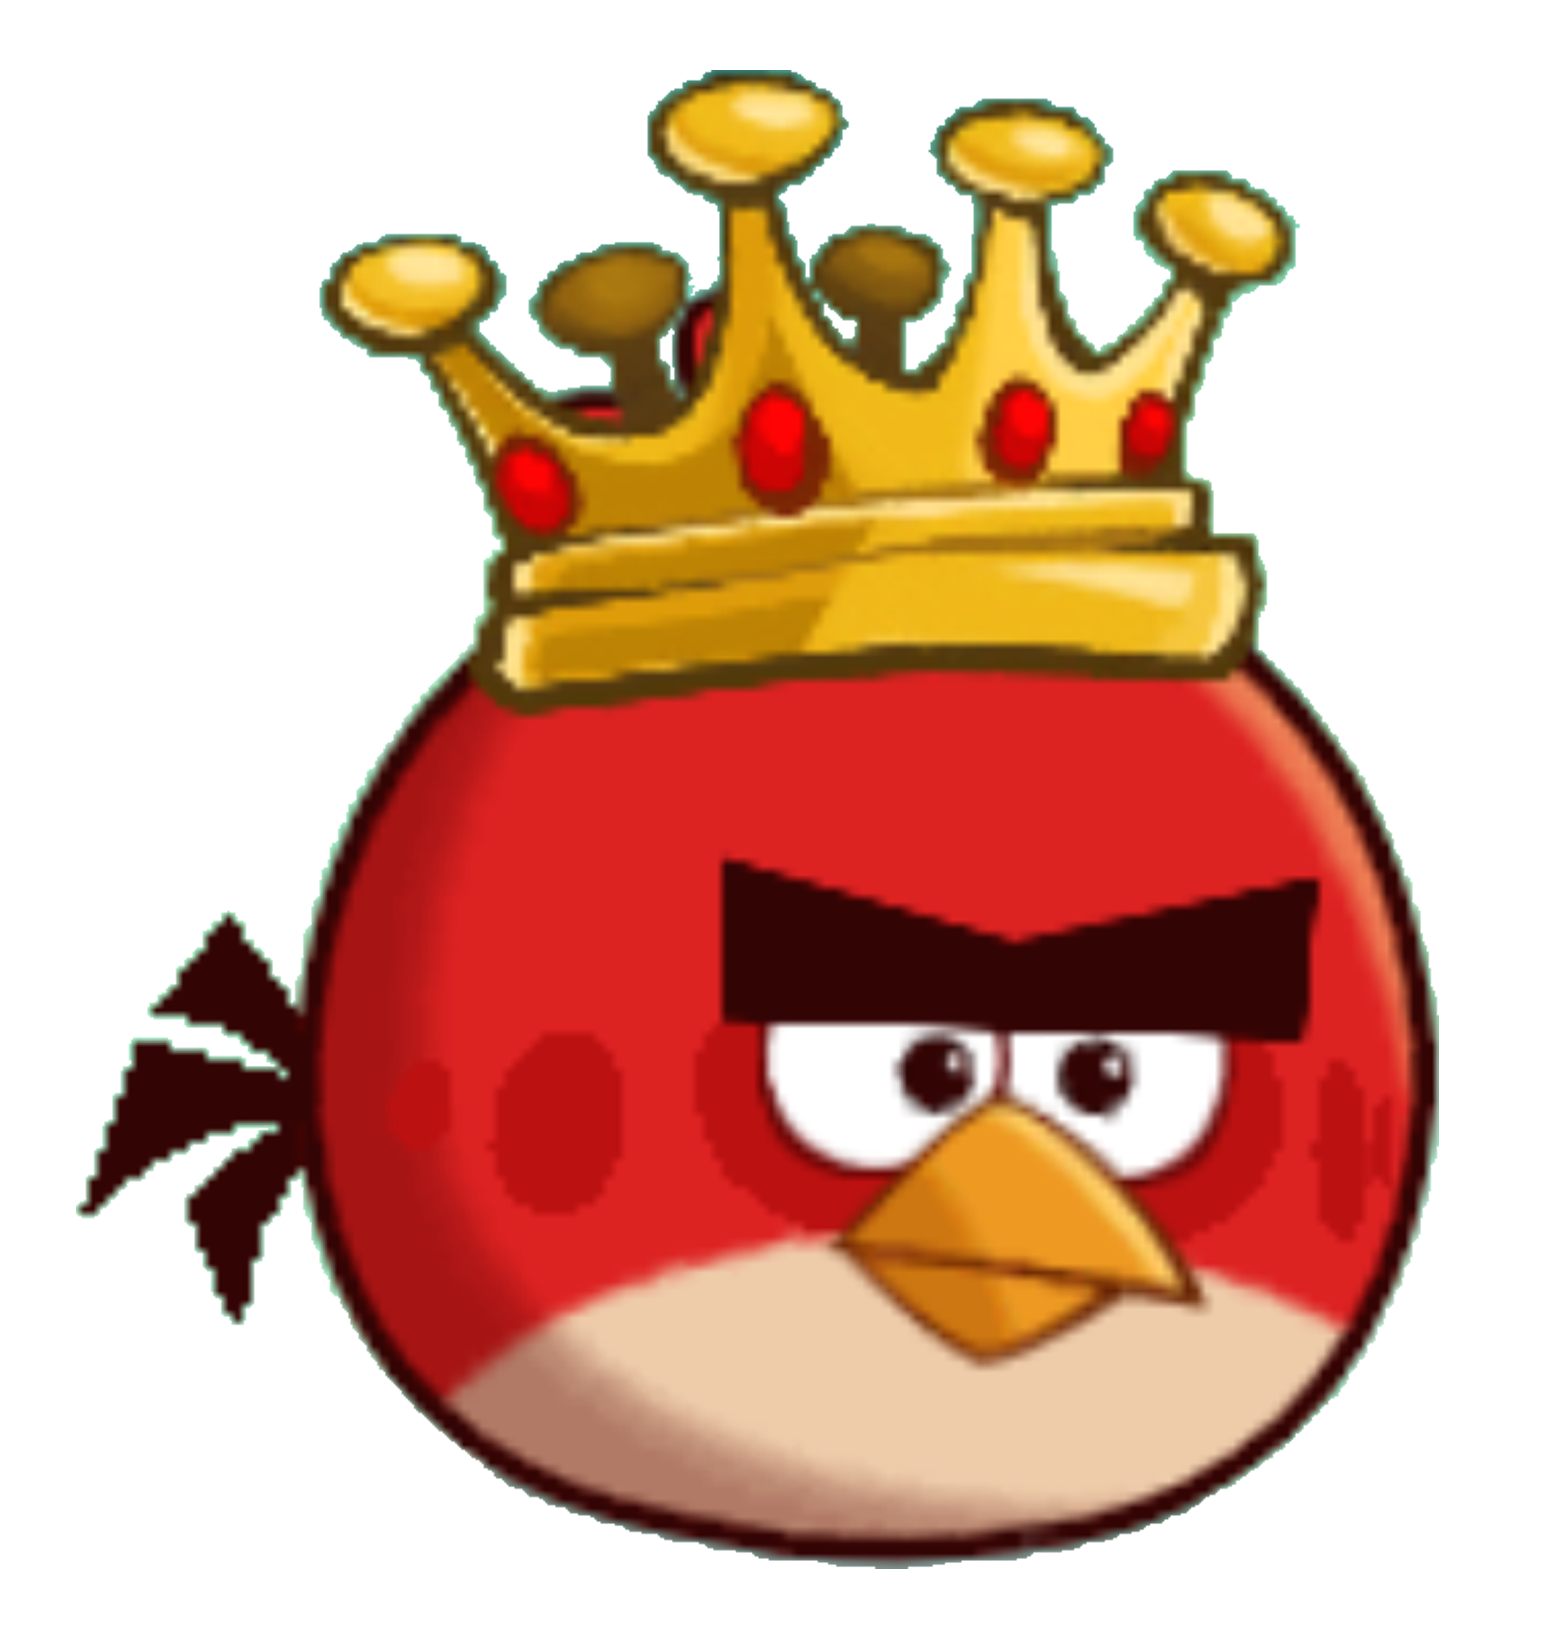 angry birds png transparent angry birds png images pluspng. Black Bedroom Furniture Sets. Home Design Ideas